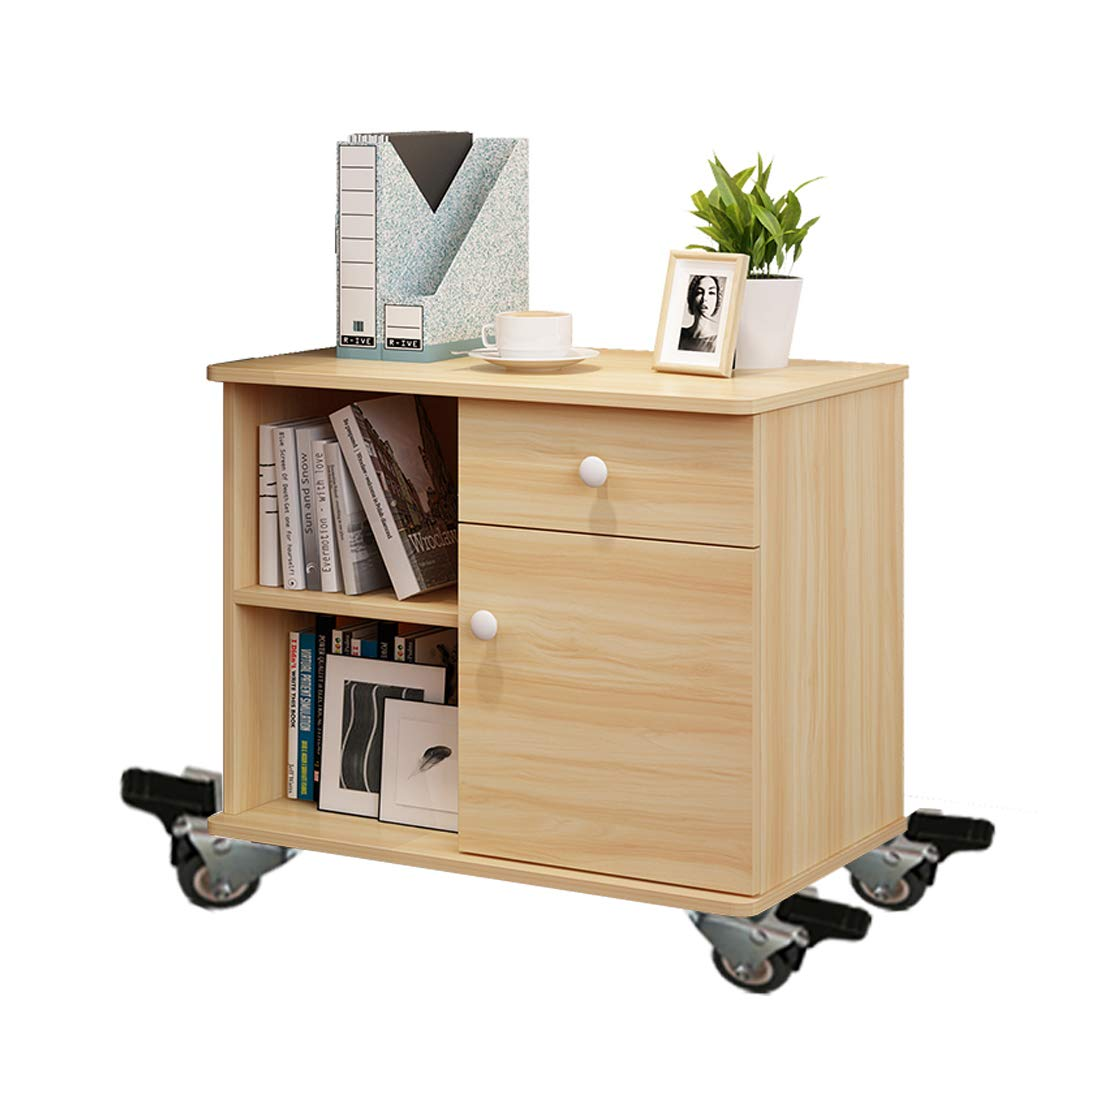 360 Degree Swivel Workbench Casters 2inch Locking Caster Wheels 4packs with 4 Brakes Replacement Casters for Furniture Plants Carts Dolly Trolley 480 Lbs Capacity 4 Heavy Duty Caters Wheels Grey